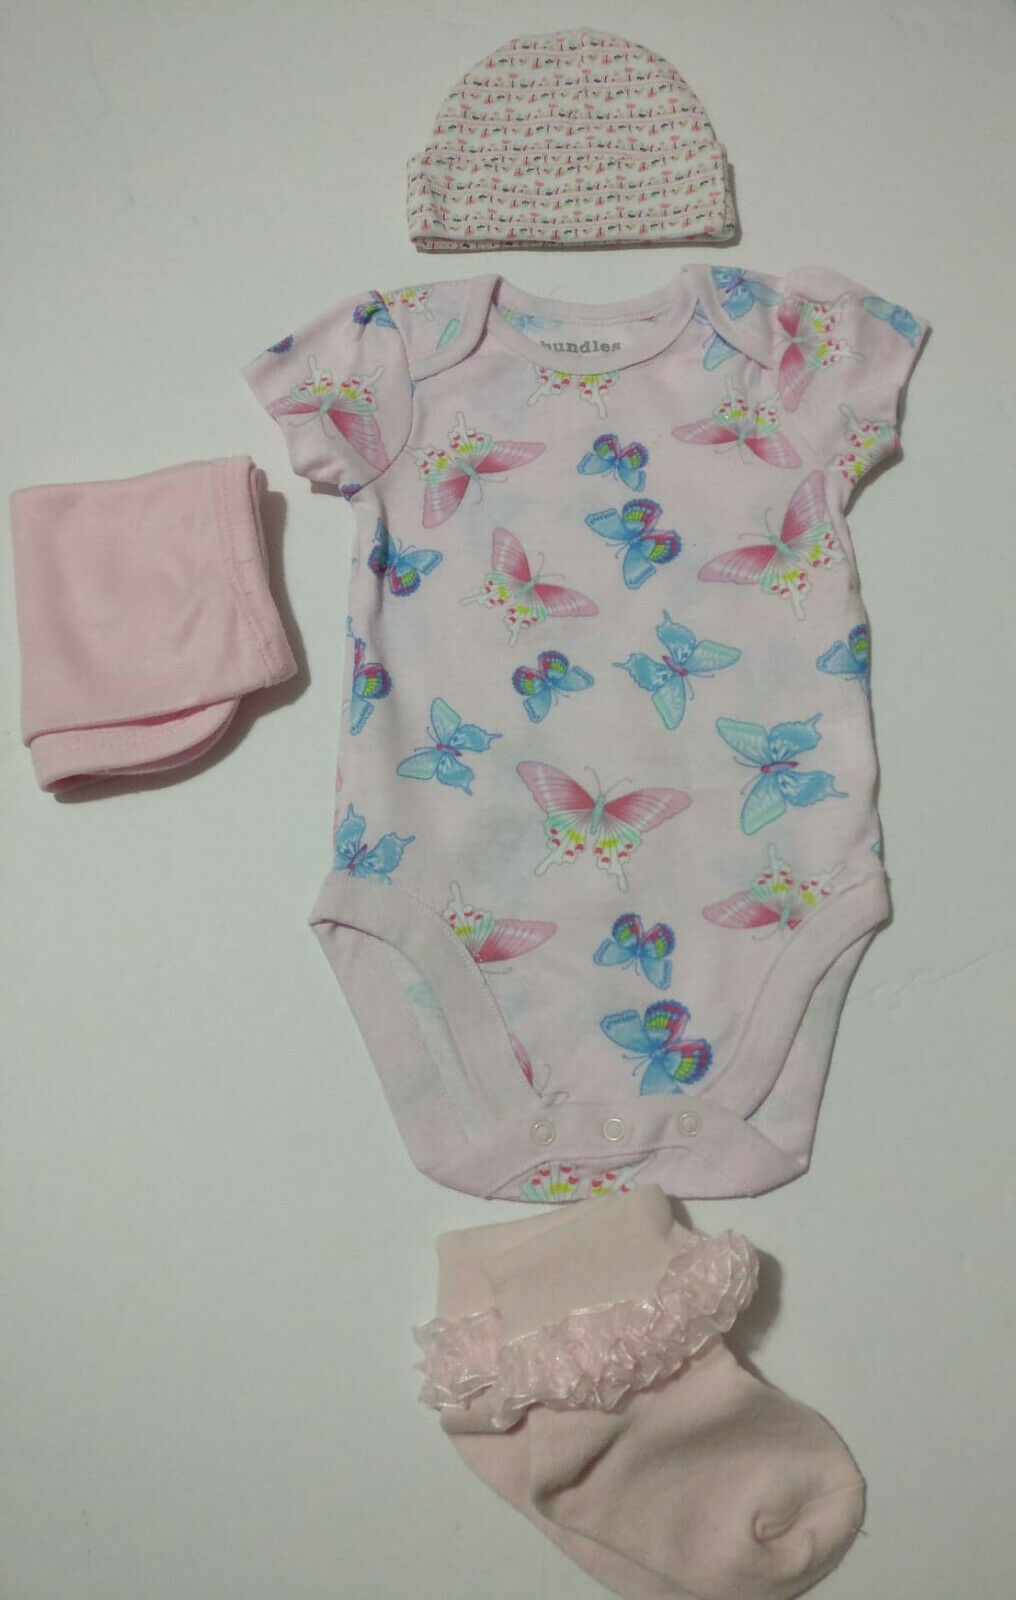 US baby girl clothing 4 piece item lot 3-6 months bodysuit b